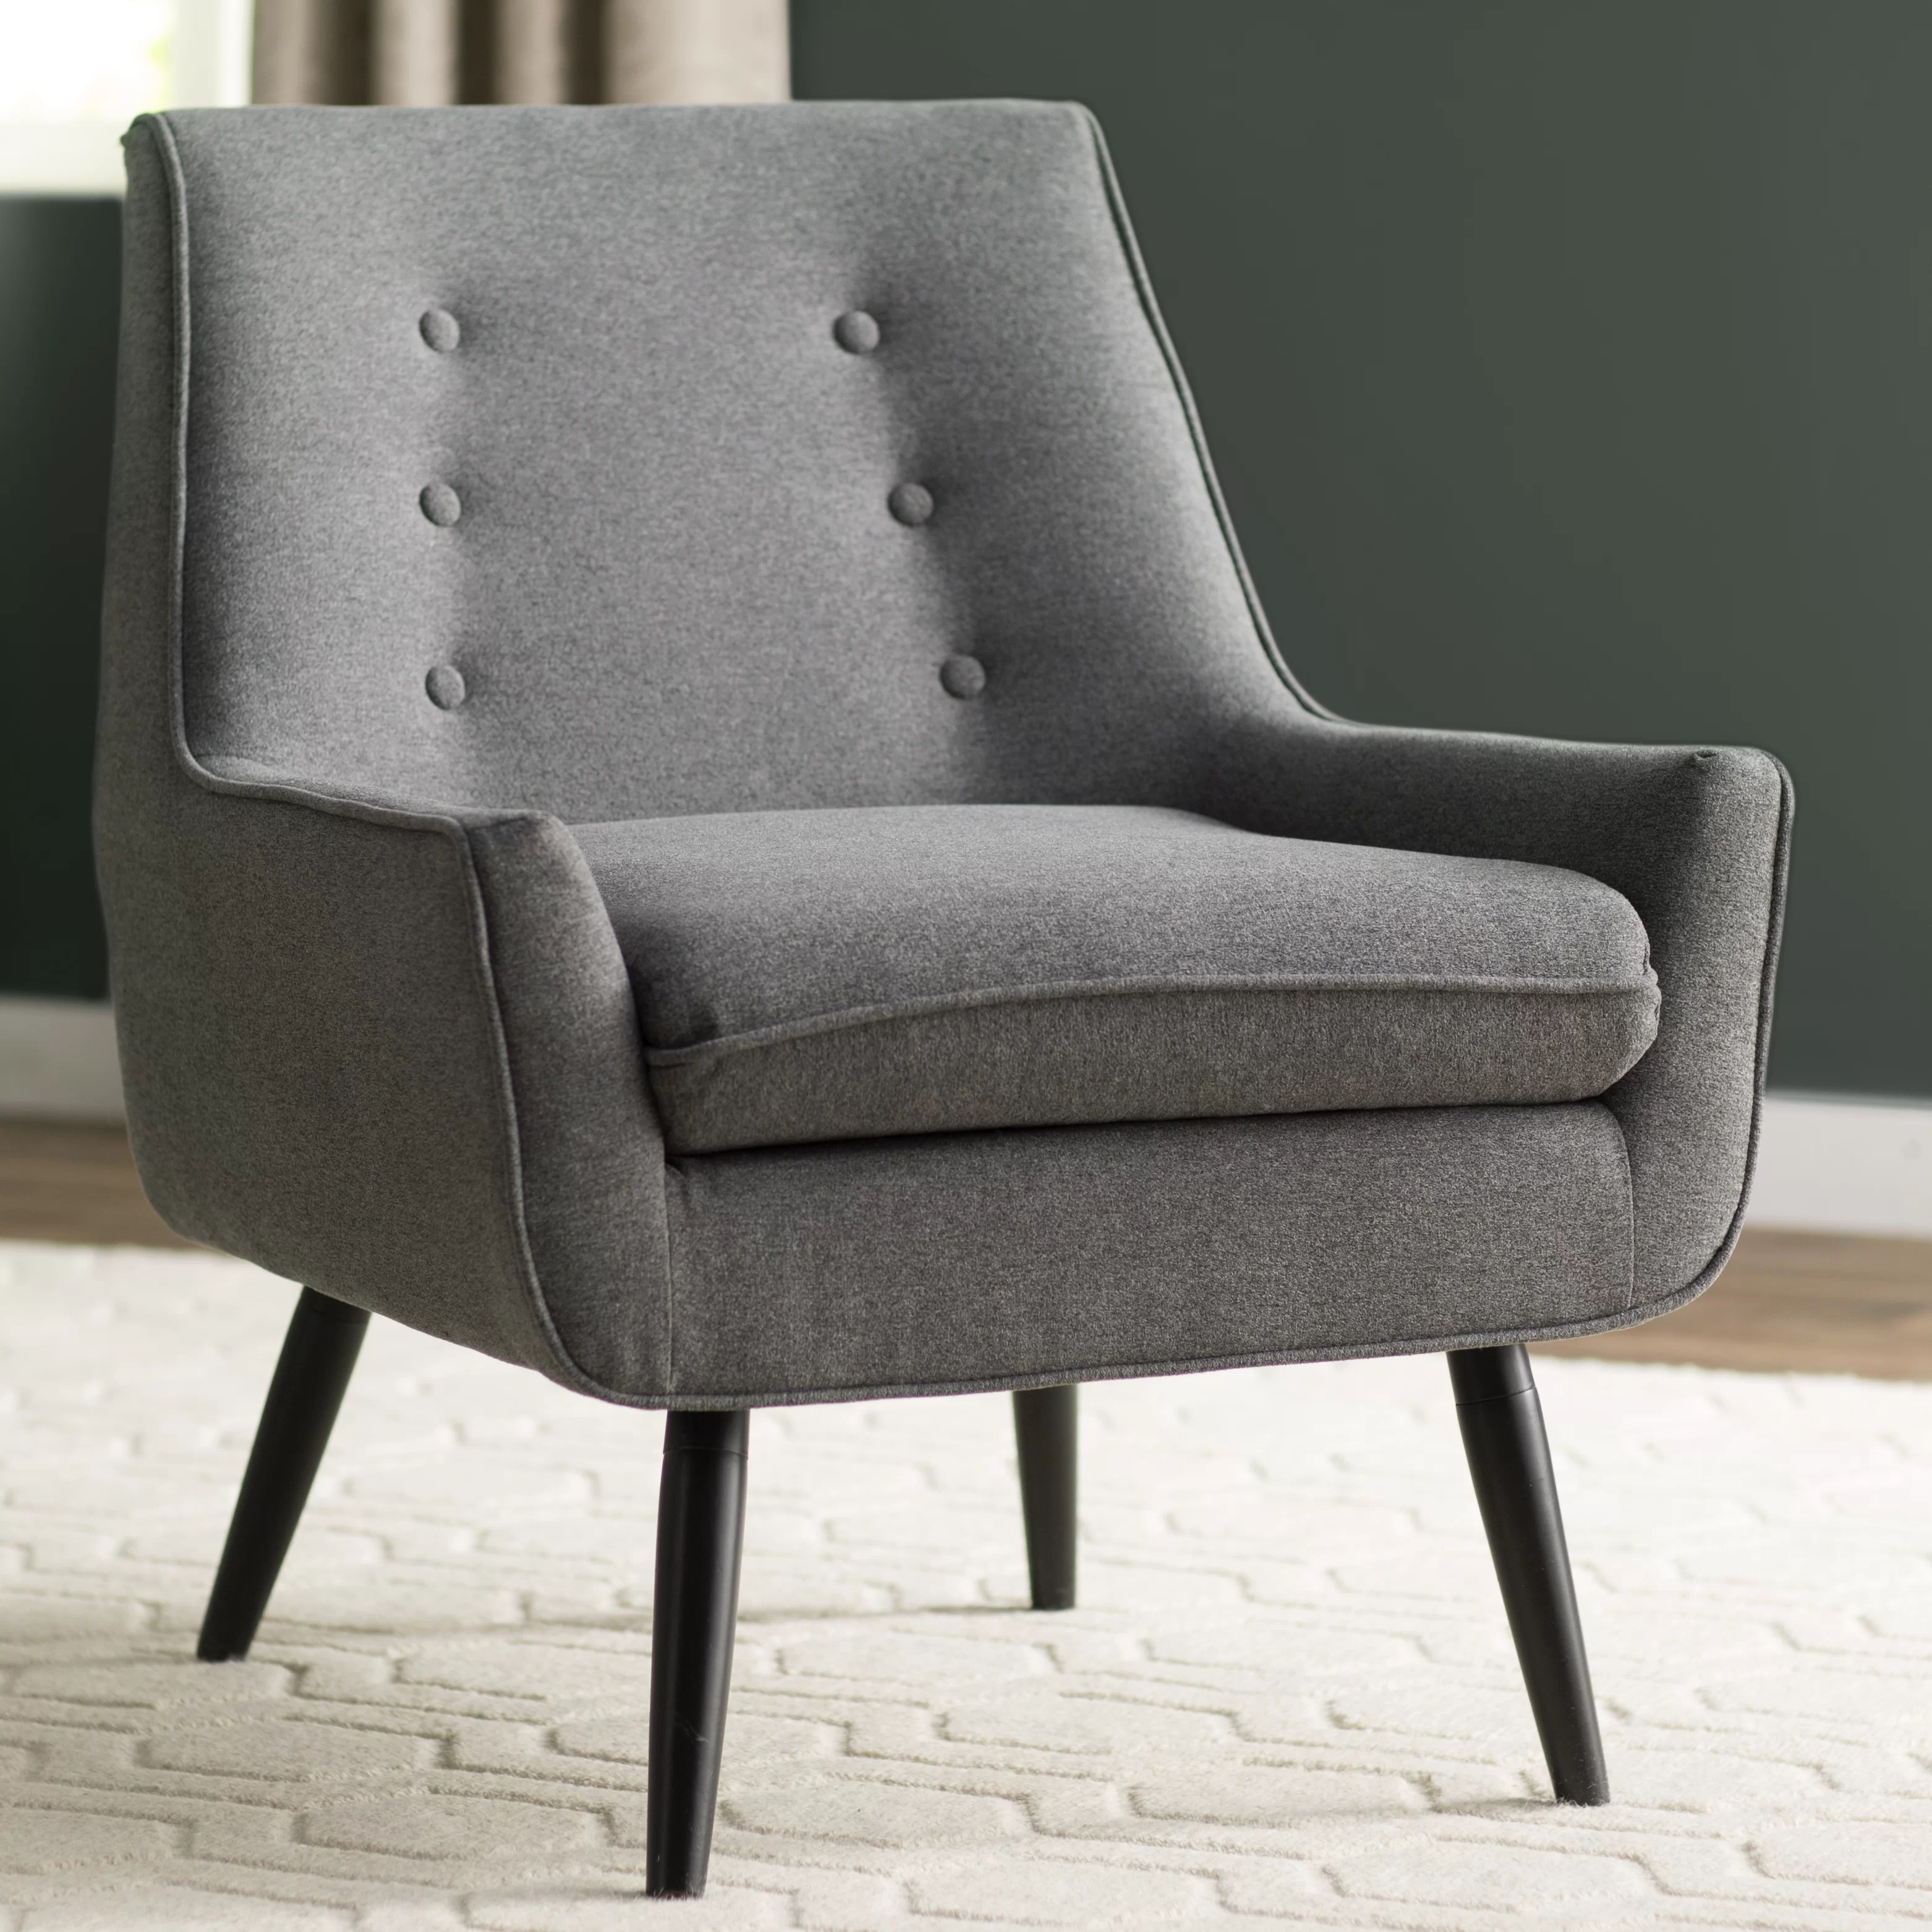 arm of chair revolving spare parts in mumbai langley street eytel and reviews wayfair